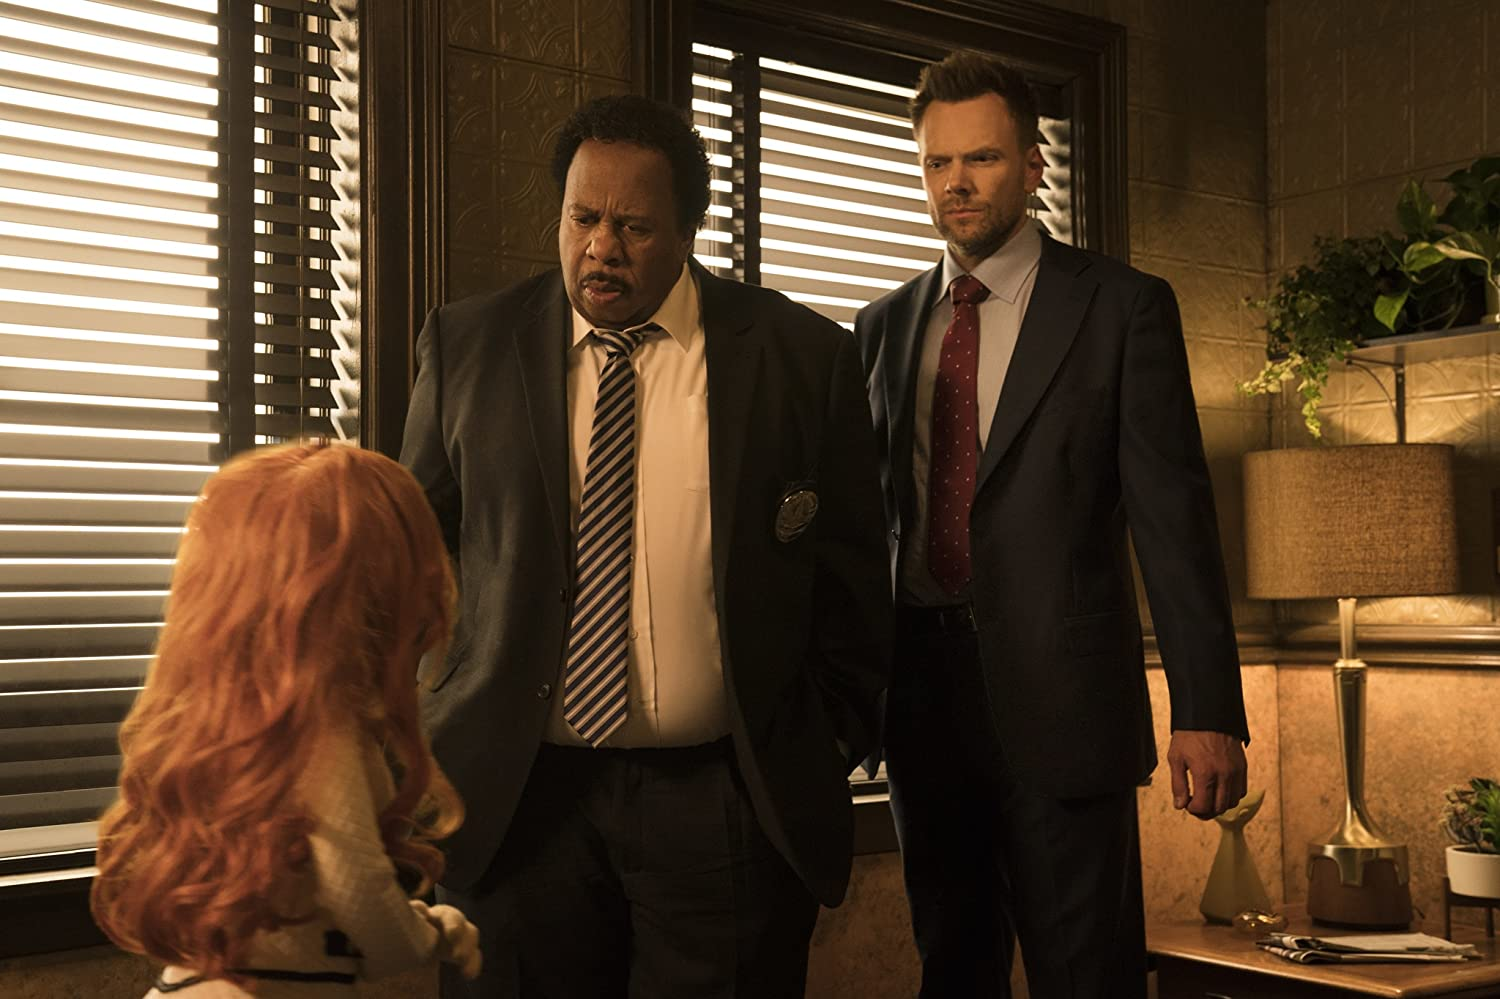 Joel McHale, Dorien Davies, and Leslie David Baker in The Happytime Murders (2018)